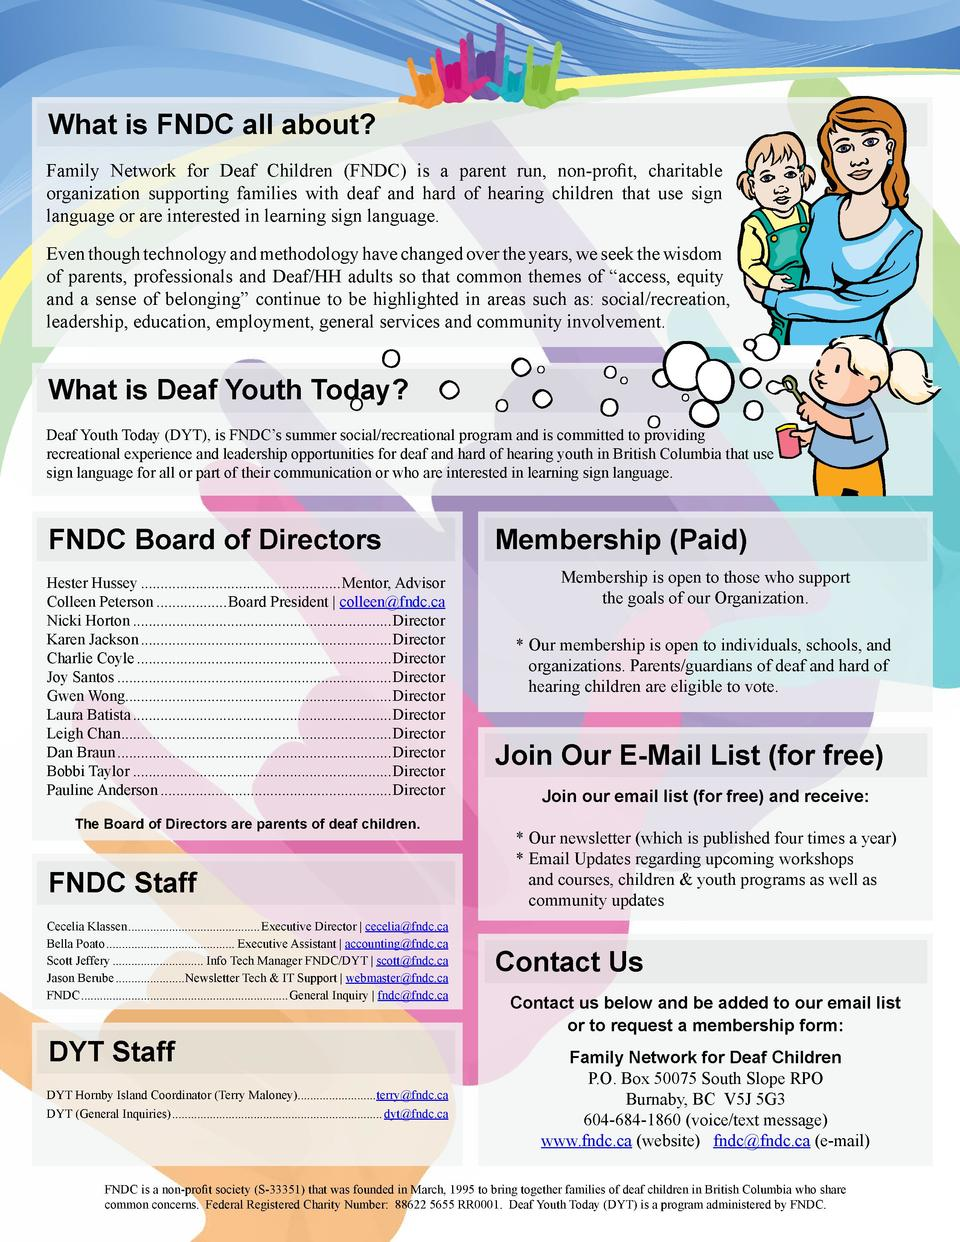 What is FNDC all about  Family Network for Deaf Children  FNDC  is a parent run, non-profit, charitable organization suppo...